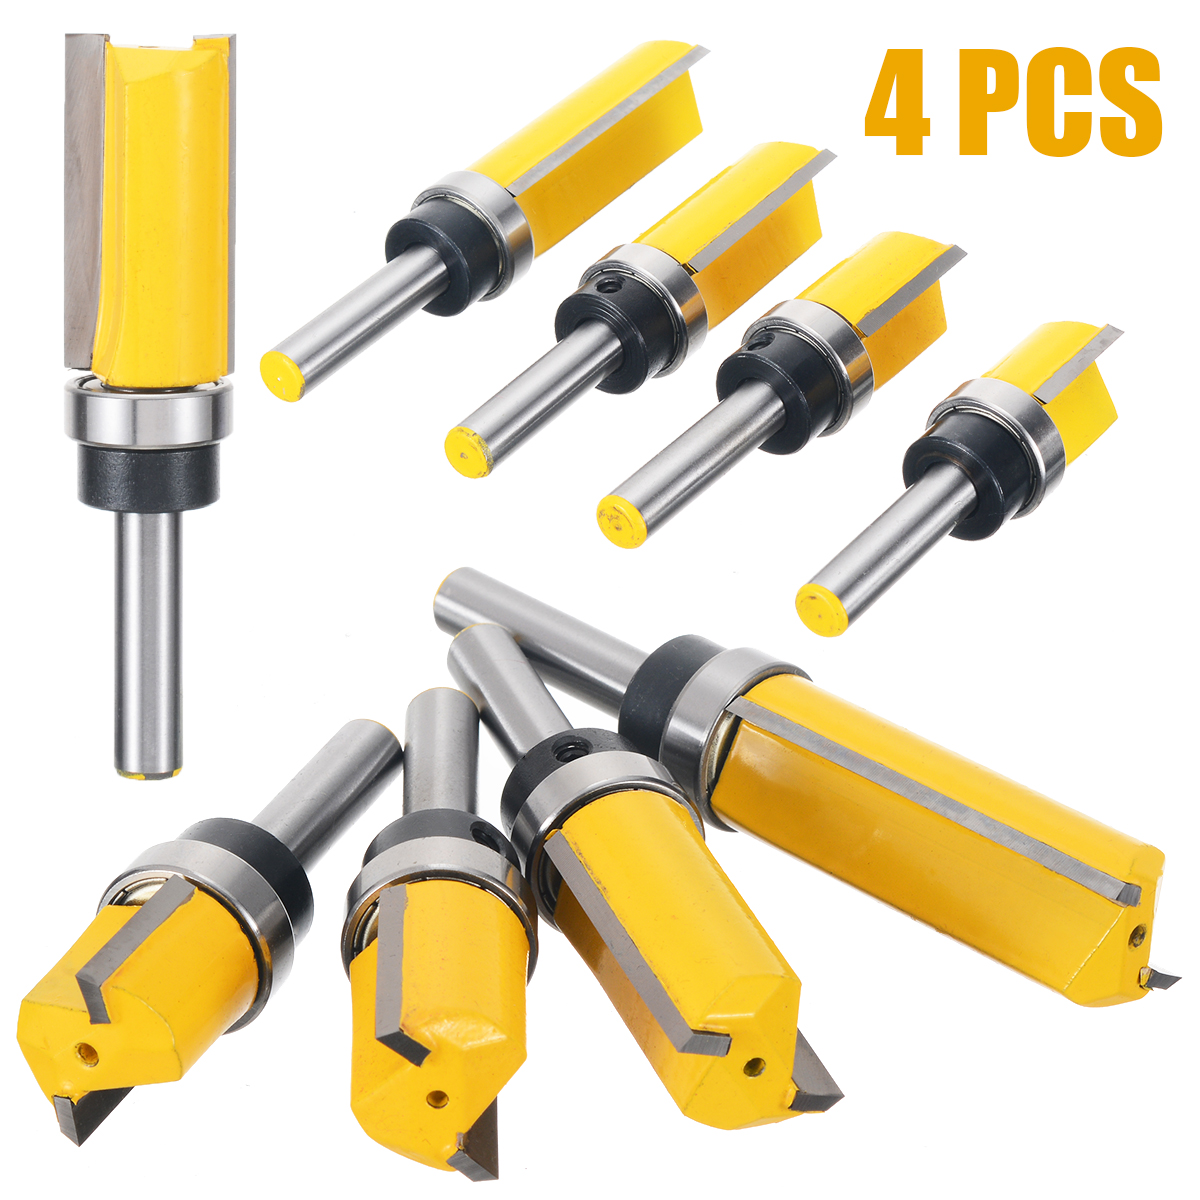 4Pcs/Set 8mm Length Flush Trim Pattern Router Bit Shank Panel Top Bottom Bearing Woodworking Milling Cutter